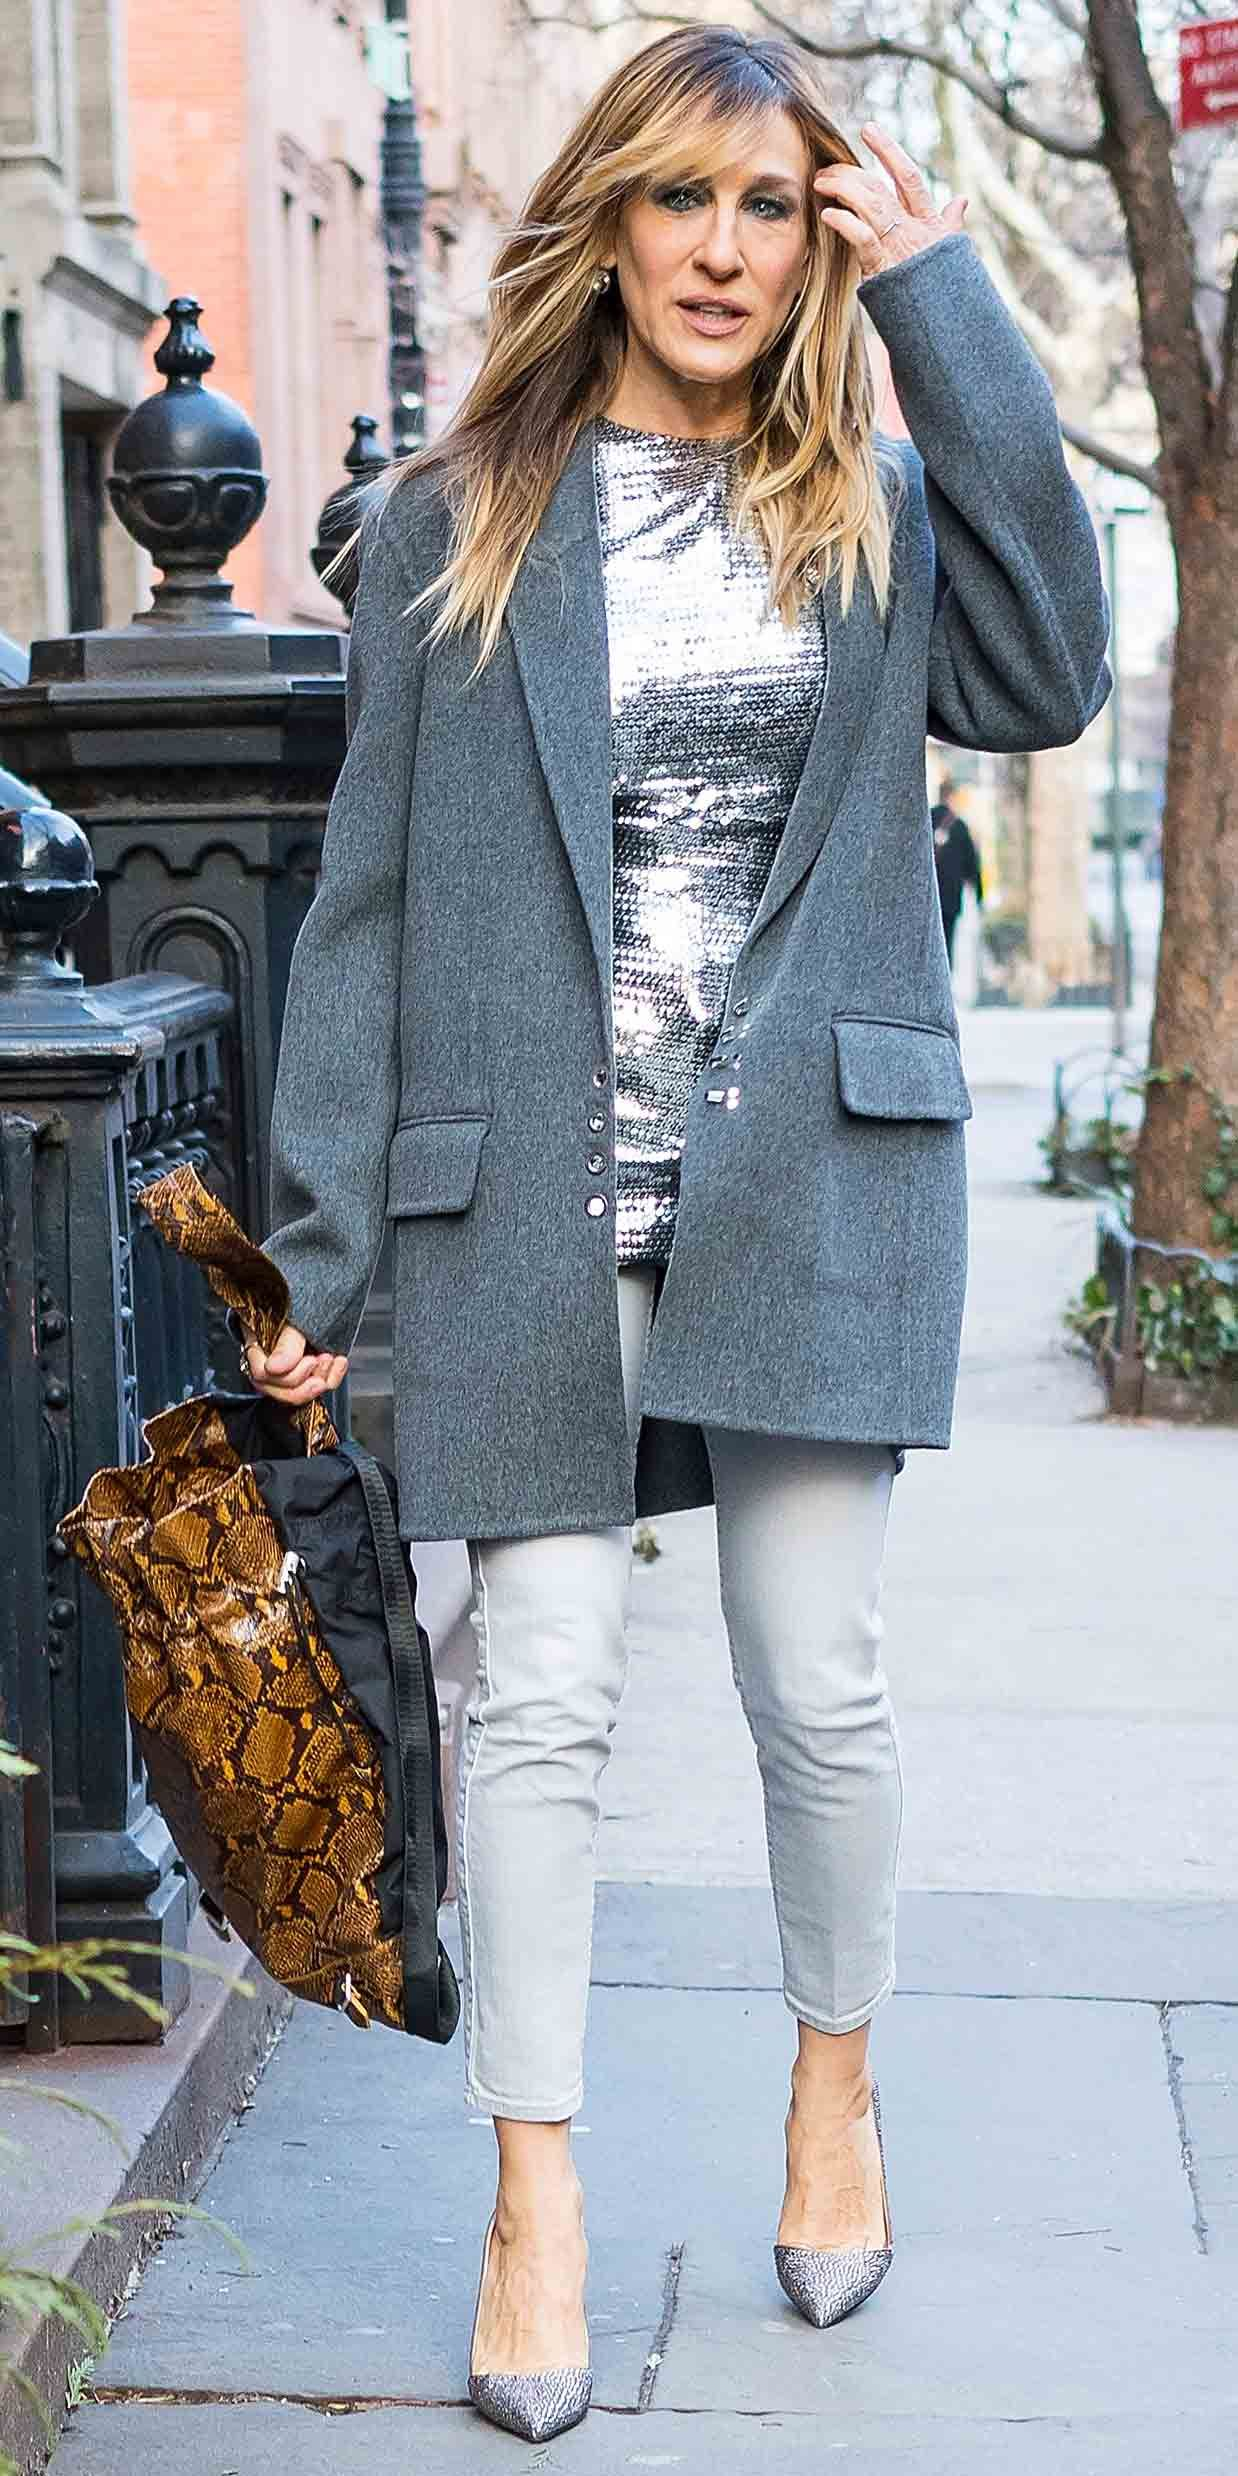 Pin by Illy T on SJP | Sarah jessica parker street style